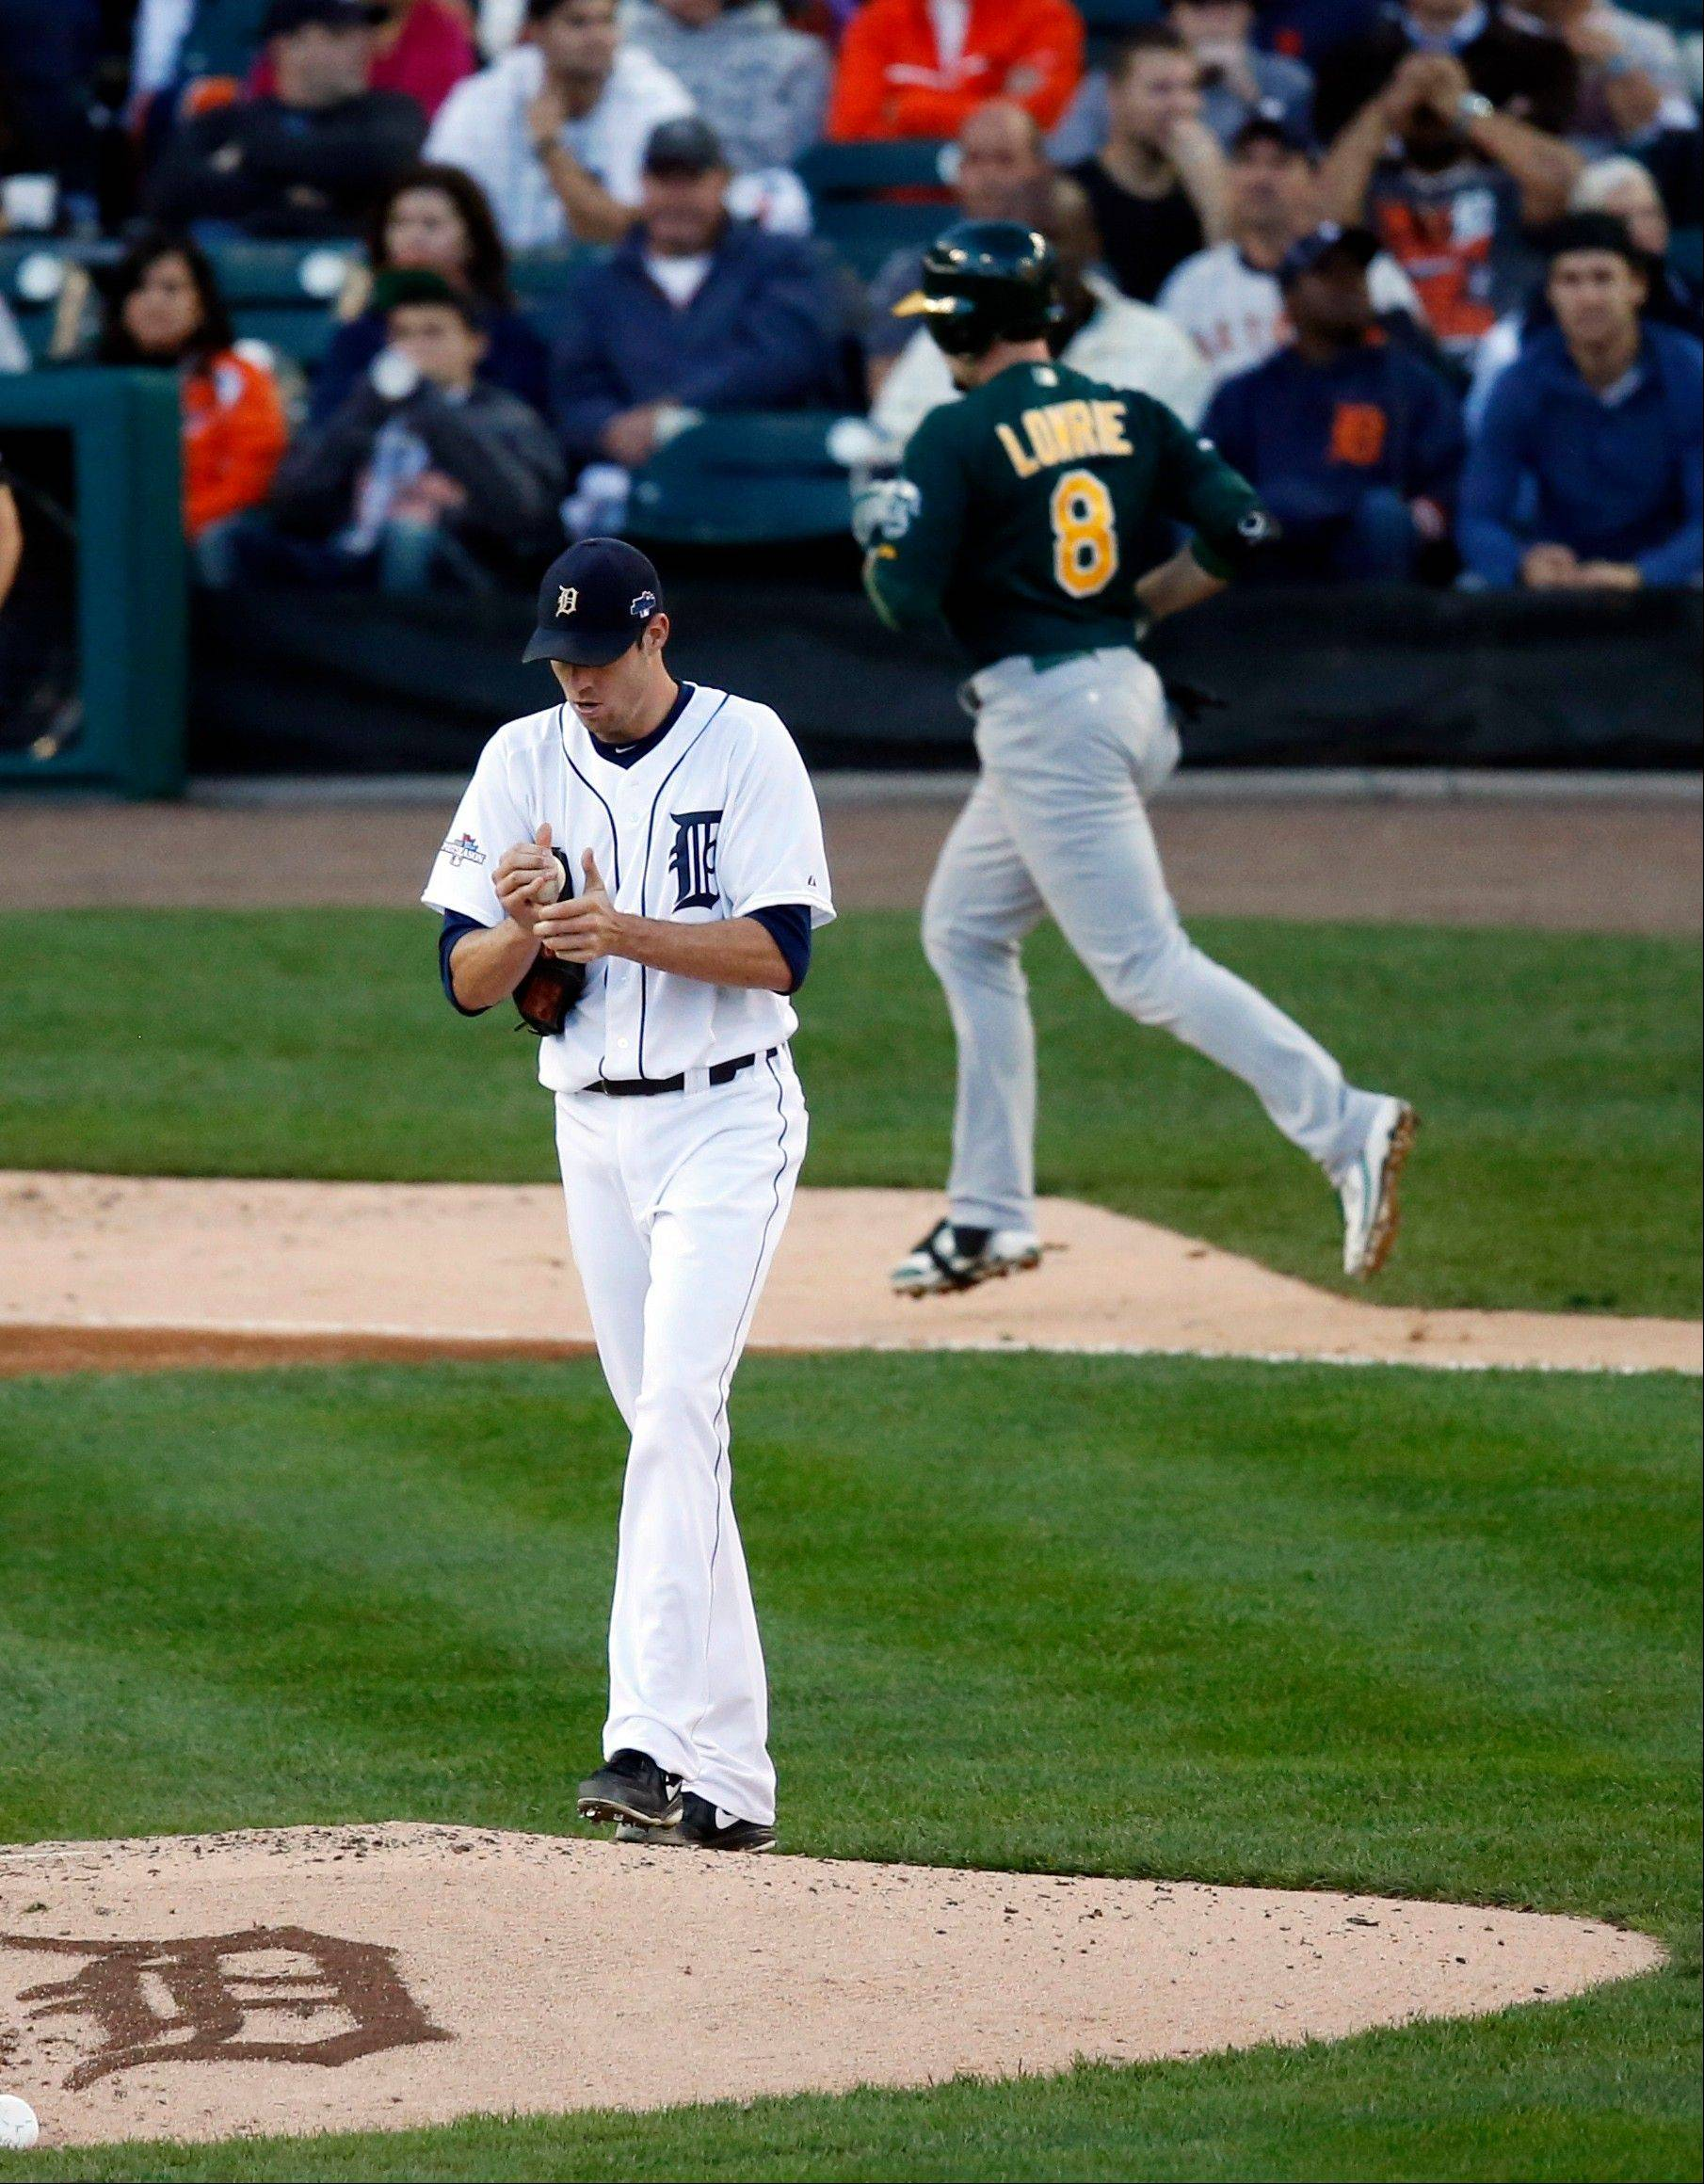 Tigers starting pitcher Doug Fister walks back to the mound as Athletics shortstop Jed Lowrie rounds the bases on a two-run homer during the fifth inning Tuesday night in Detroit.